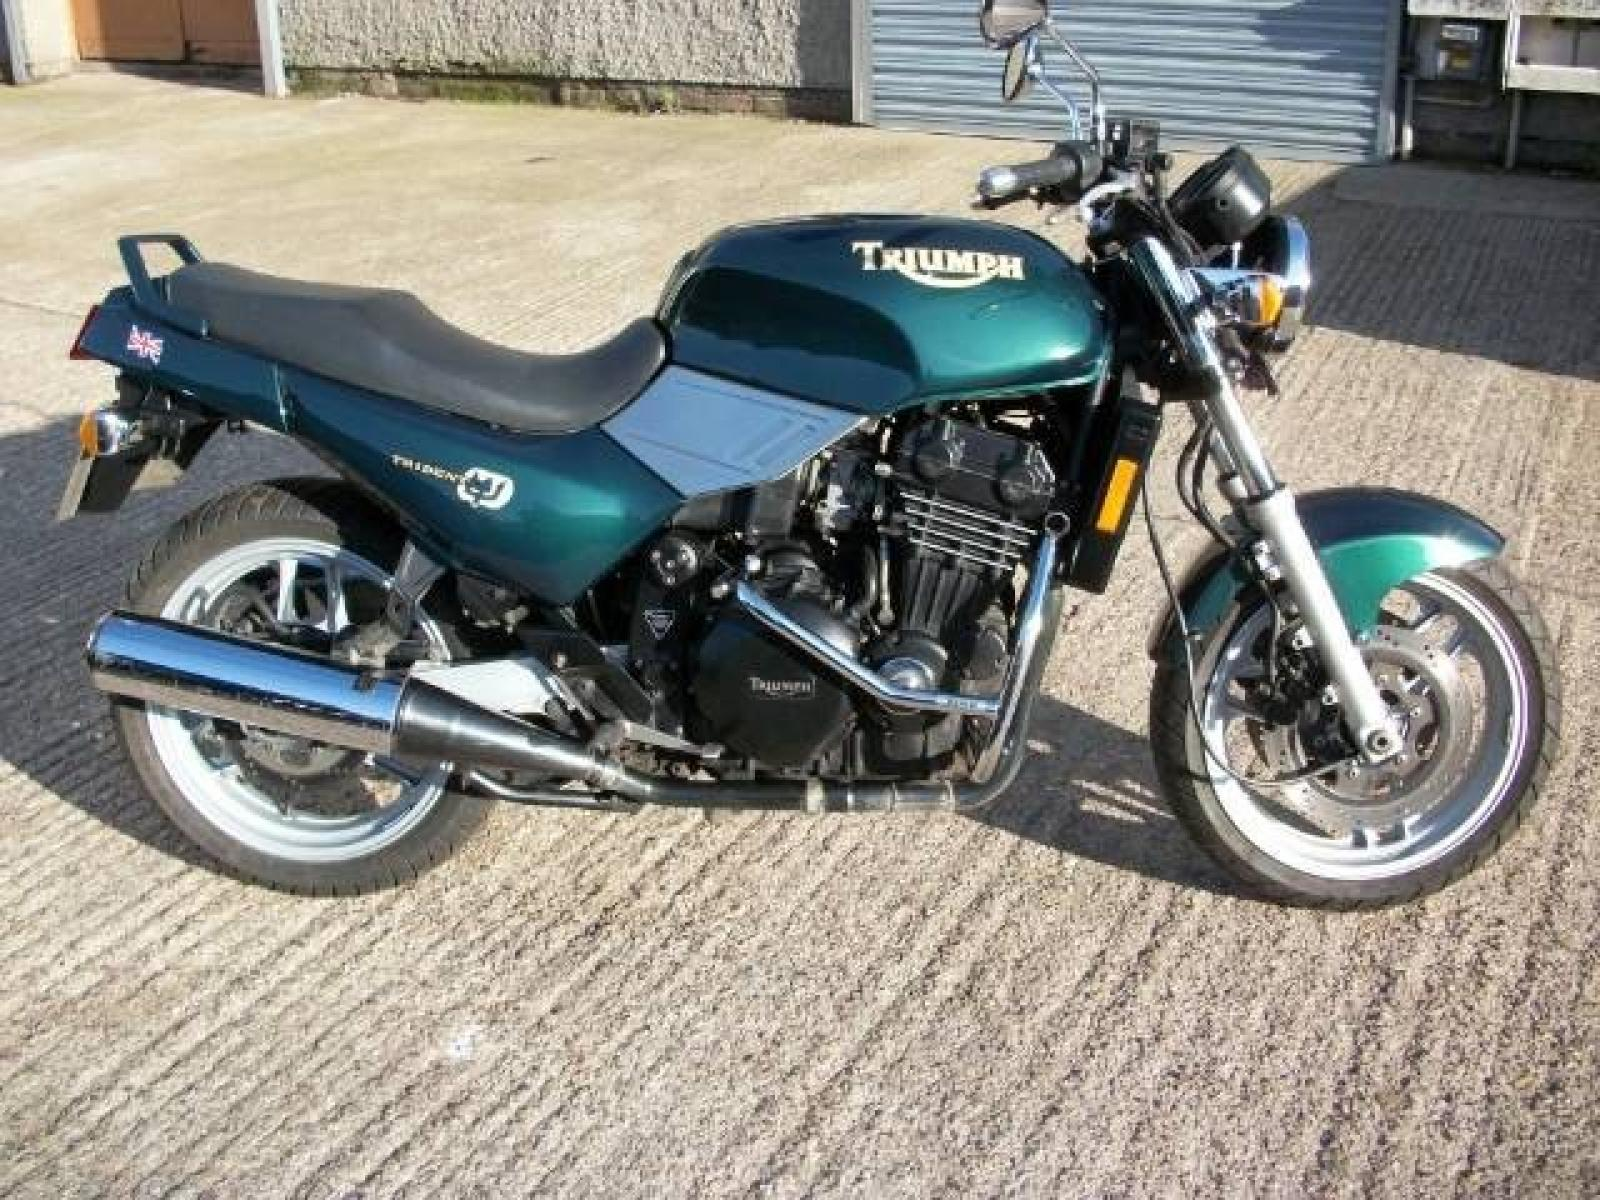 Triumph Trident 750 1993 wallpapers #129847